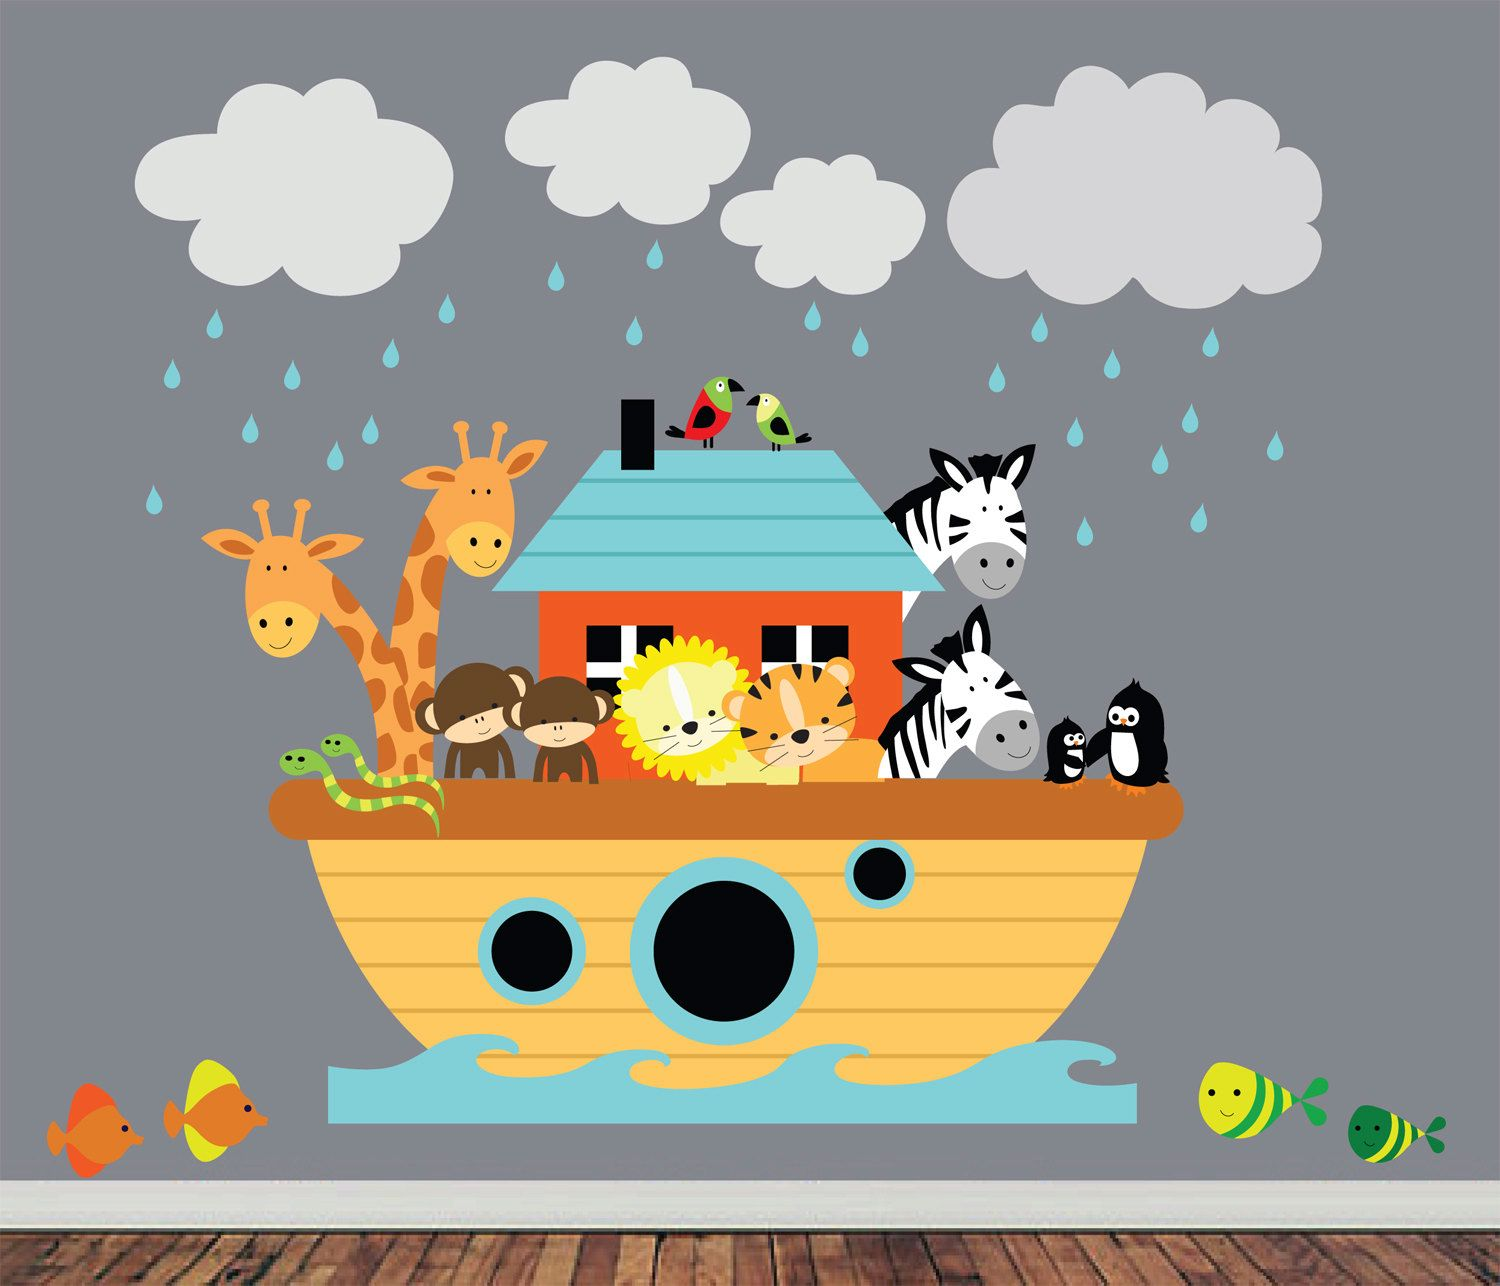 reusable noahs ark wall decal childrens fabric wall decal reusable noahs ark wall decal childrens fabric wall decal extra large